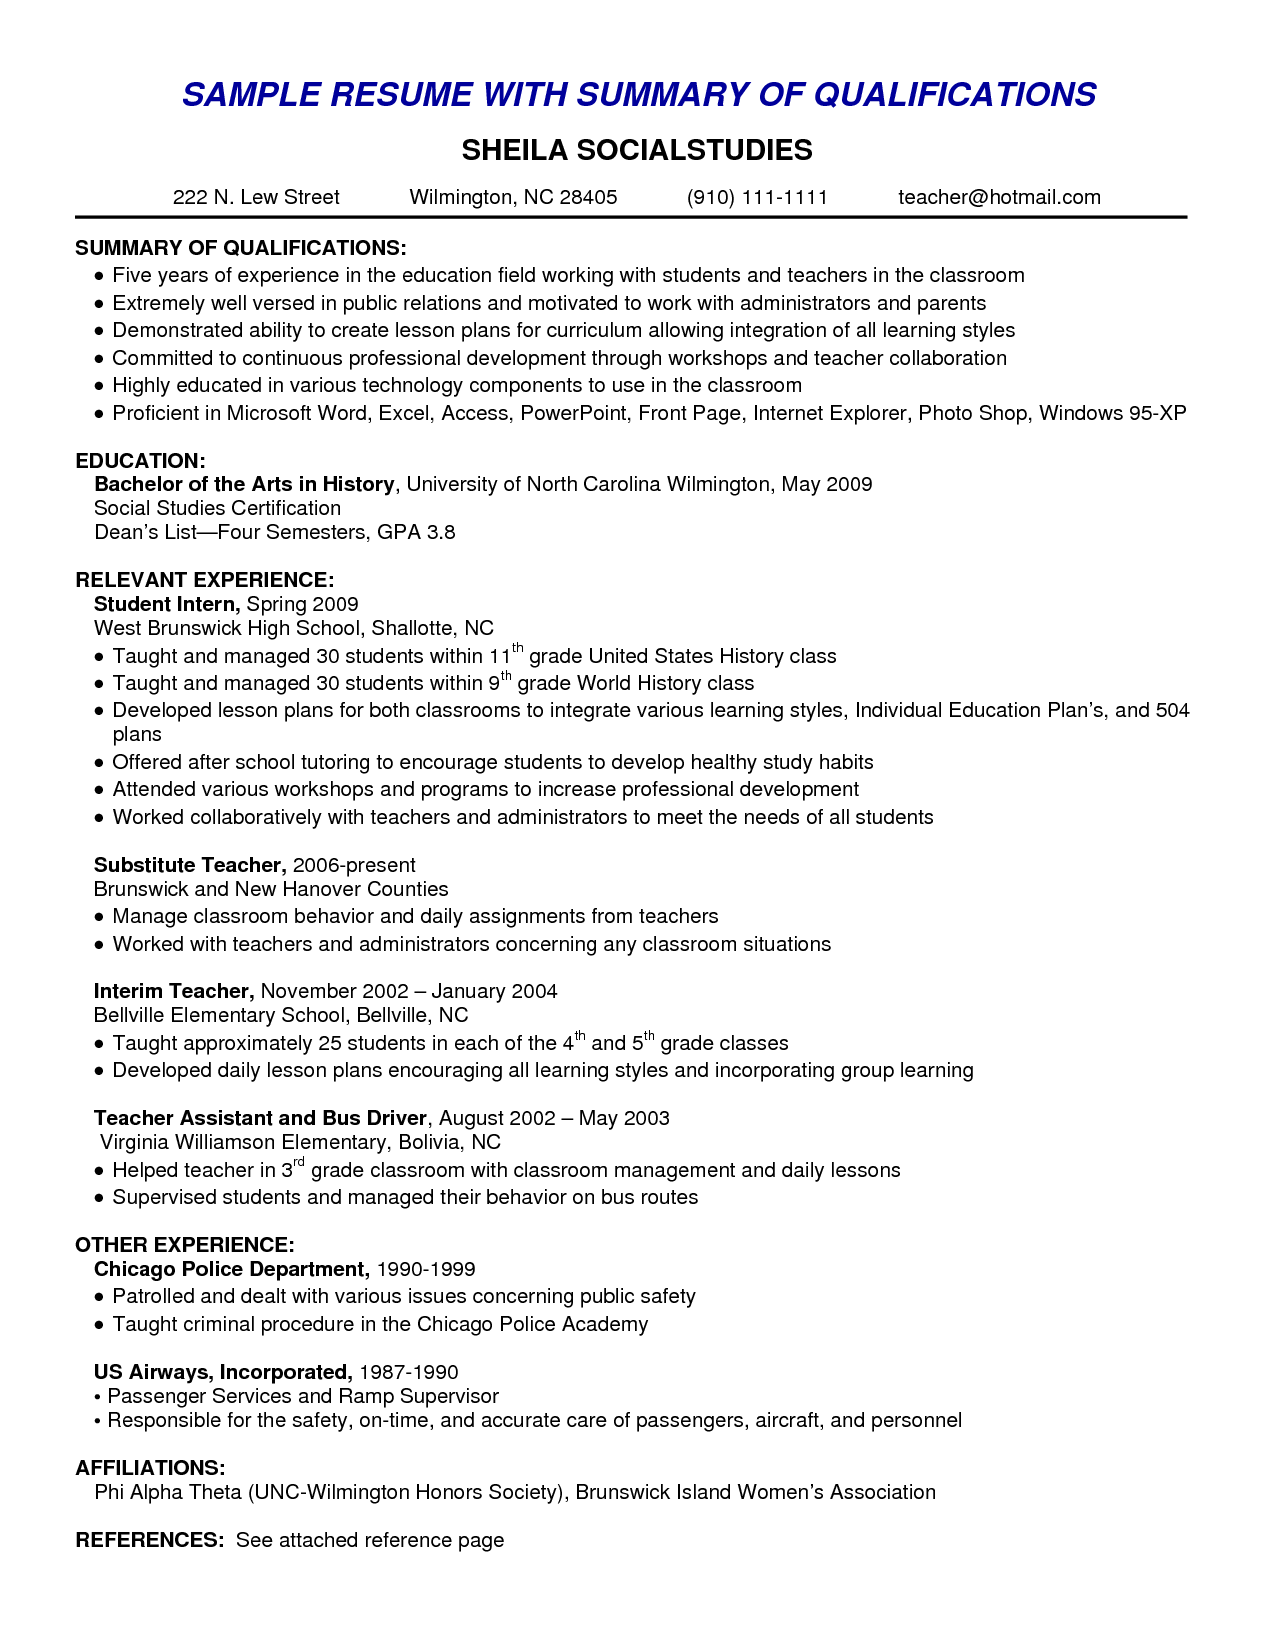 qualifications summary resume examples